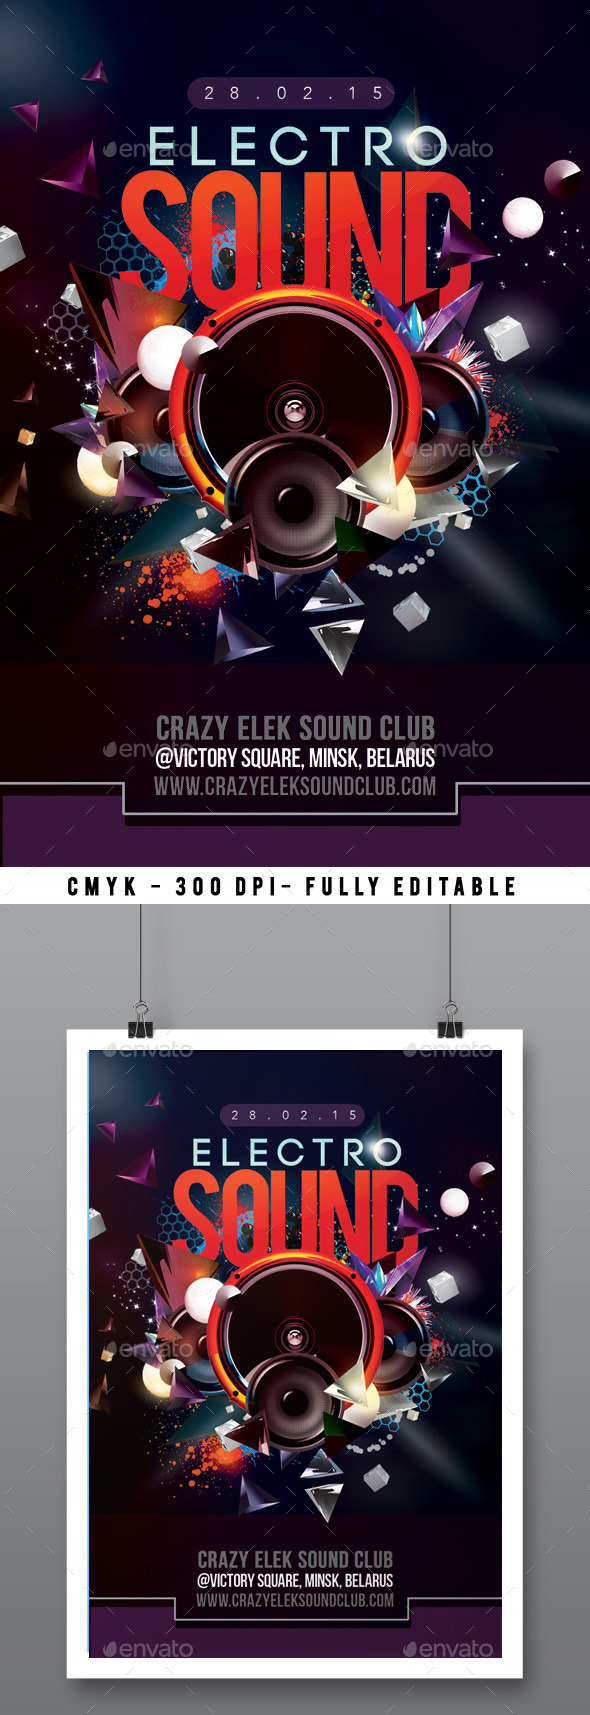 Abstract Electro Sound Night Party In Club - Clubs & Parties Events